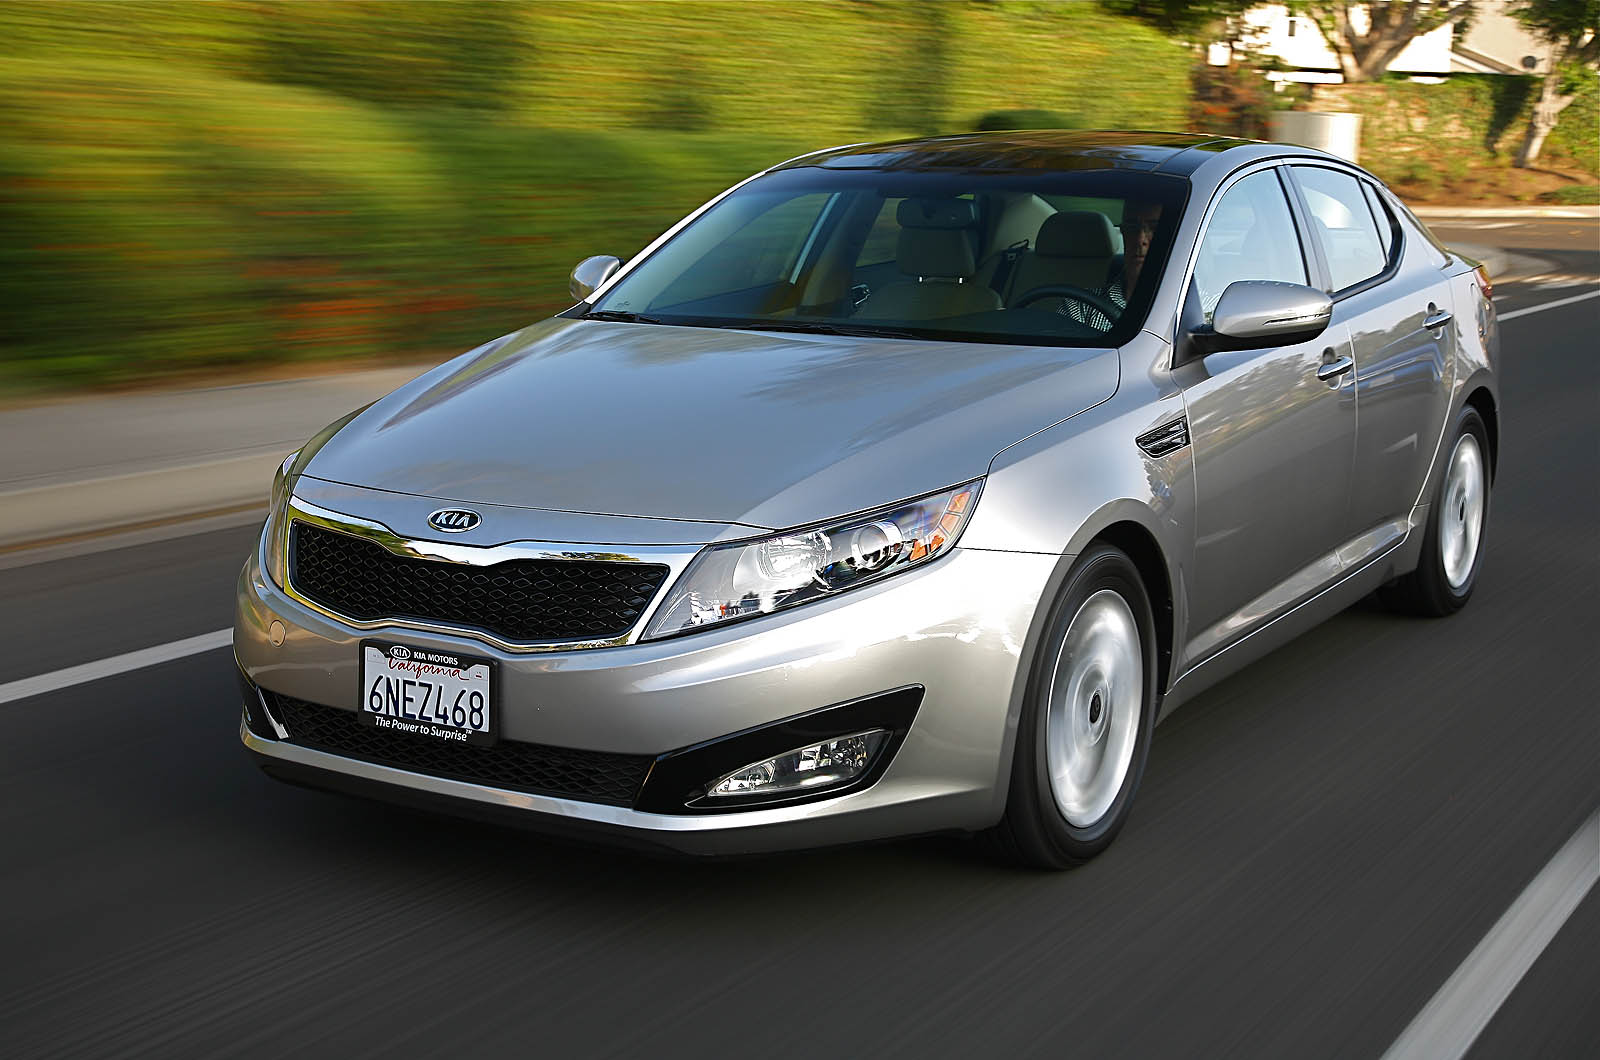 The Kia Optima is designed by ex-Audi design chief, Peter Schreyer